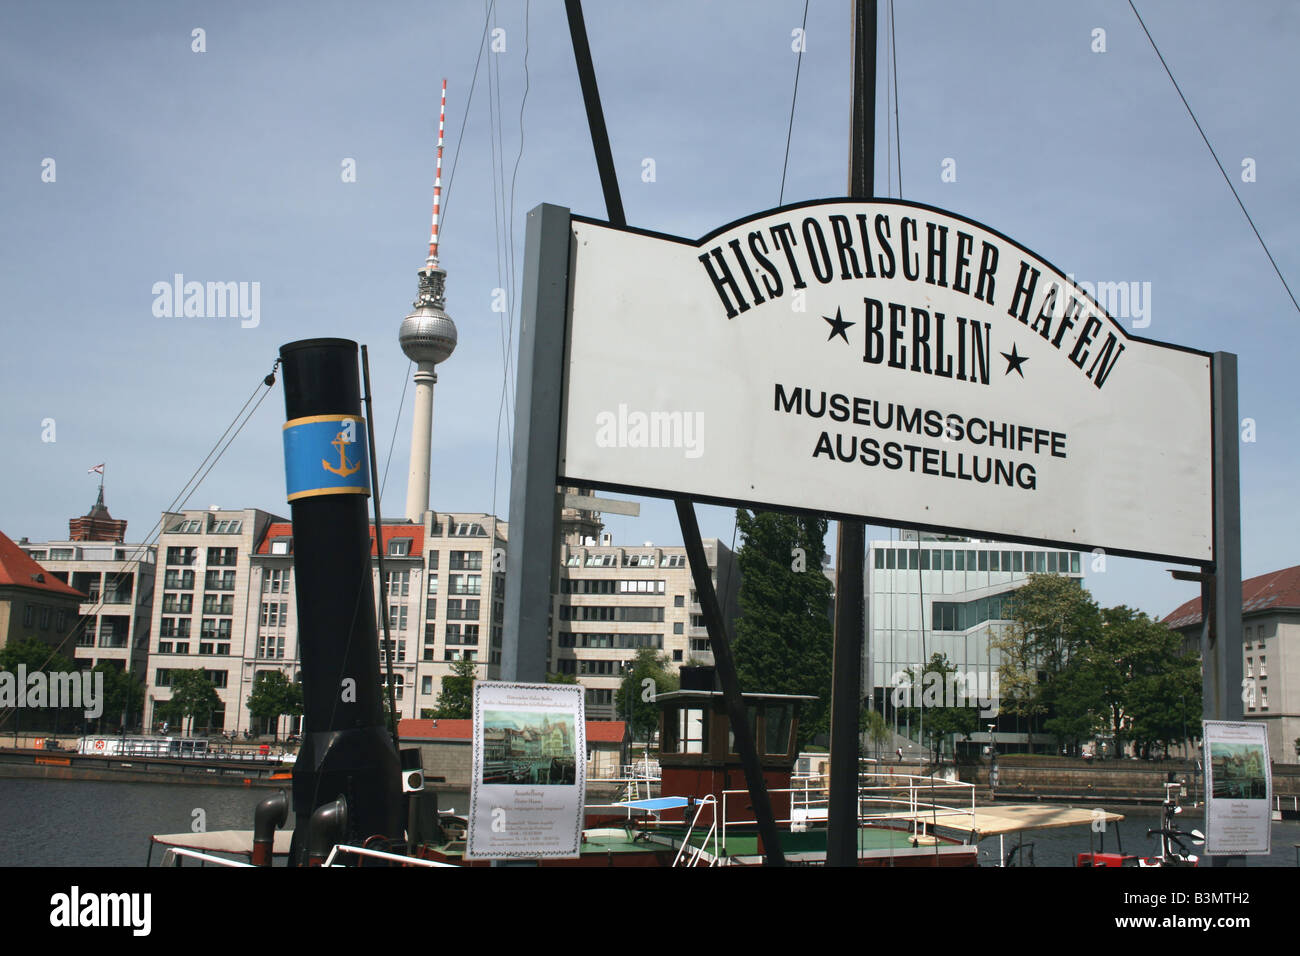 historischer hafen historical harbour Berlin Germany  May 2008 - Stock Image